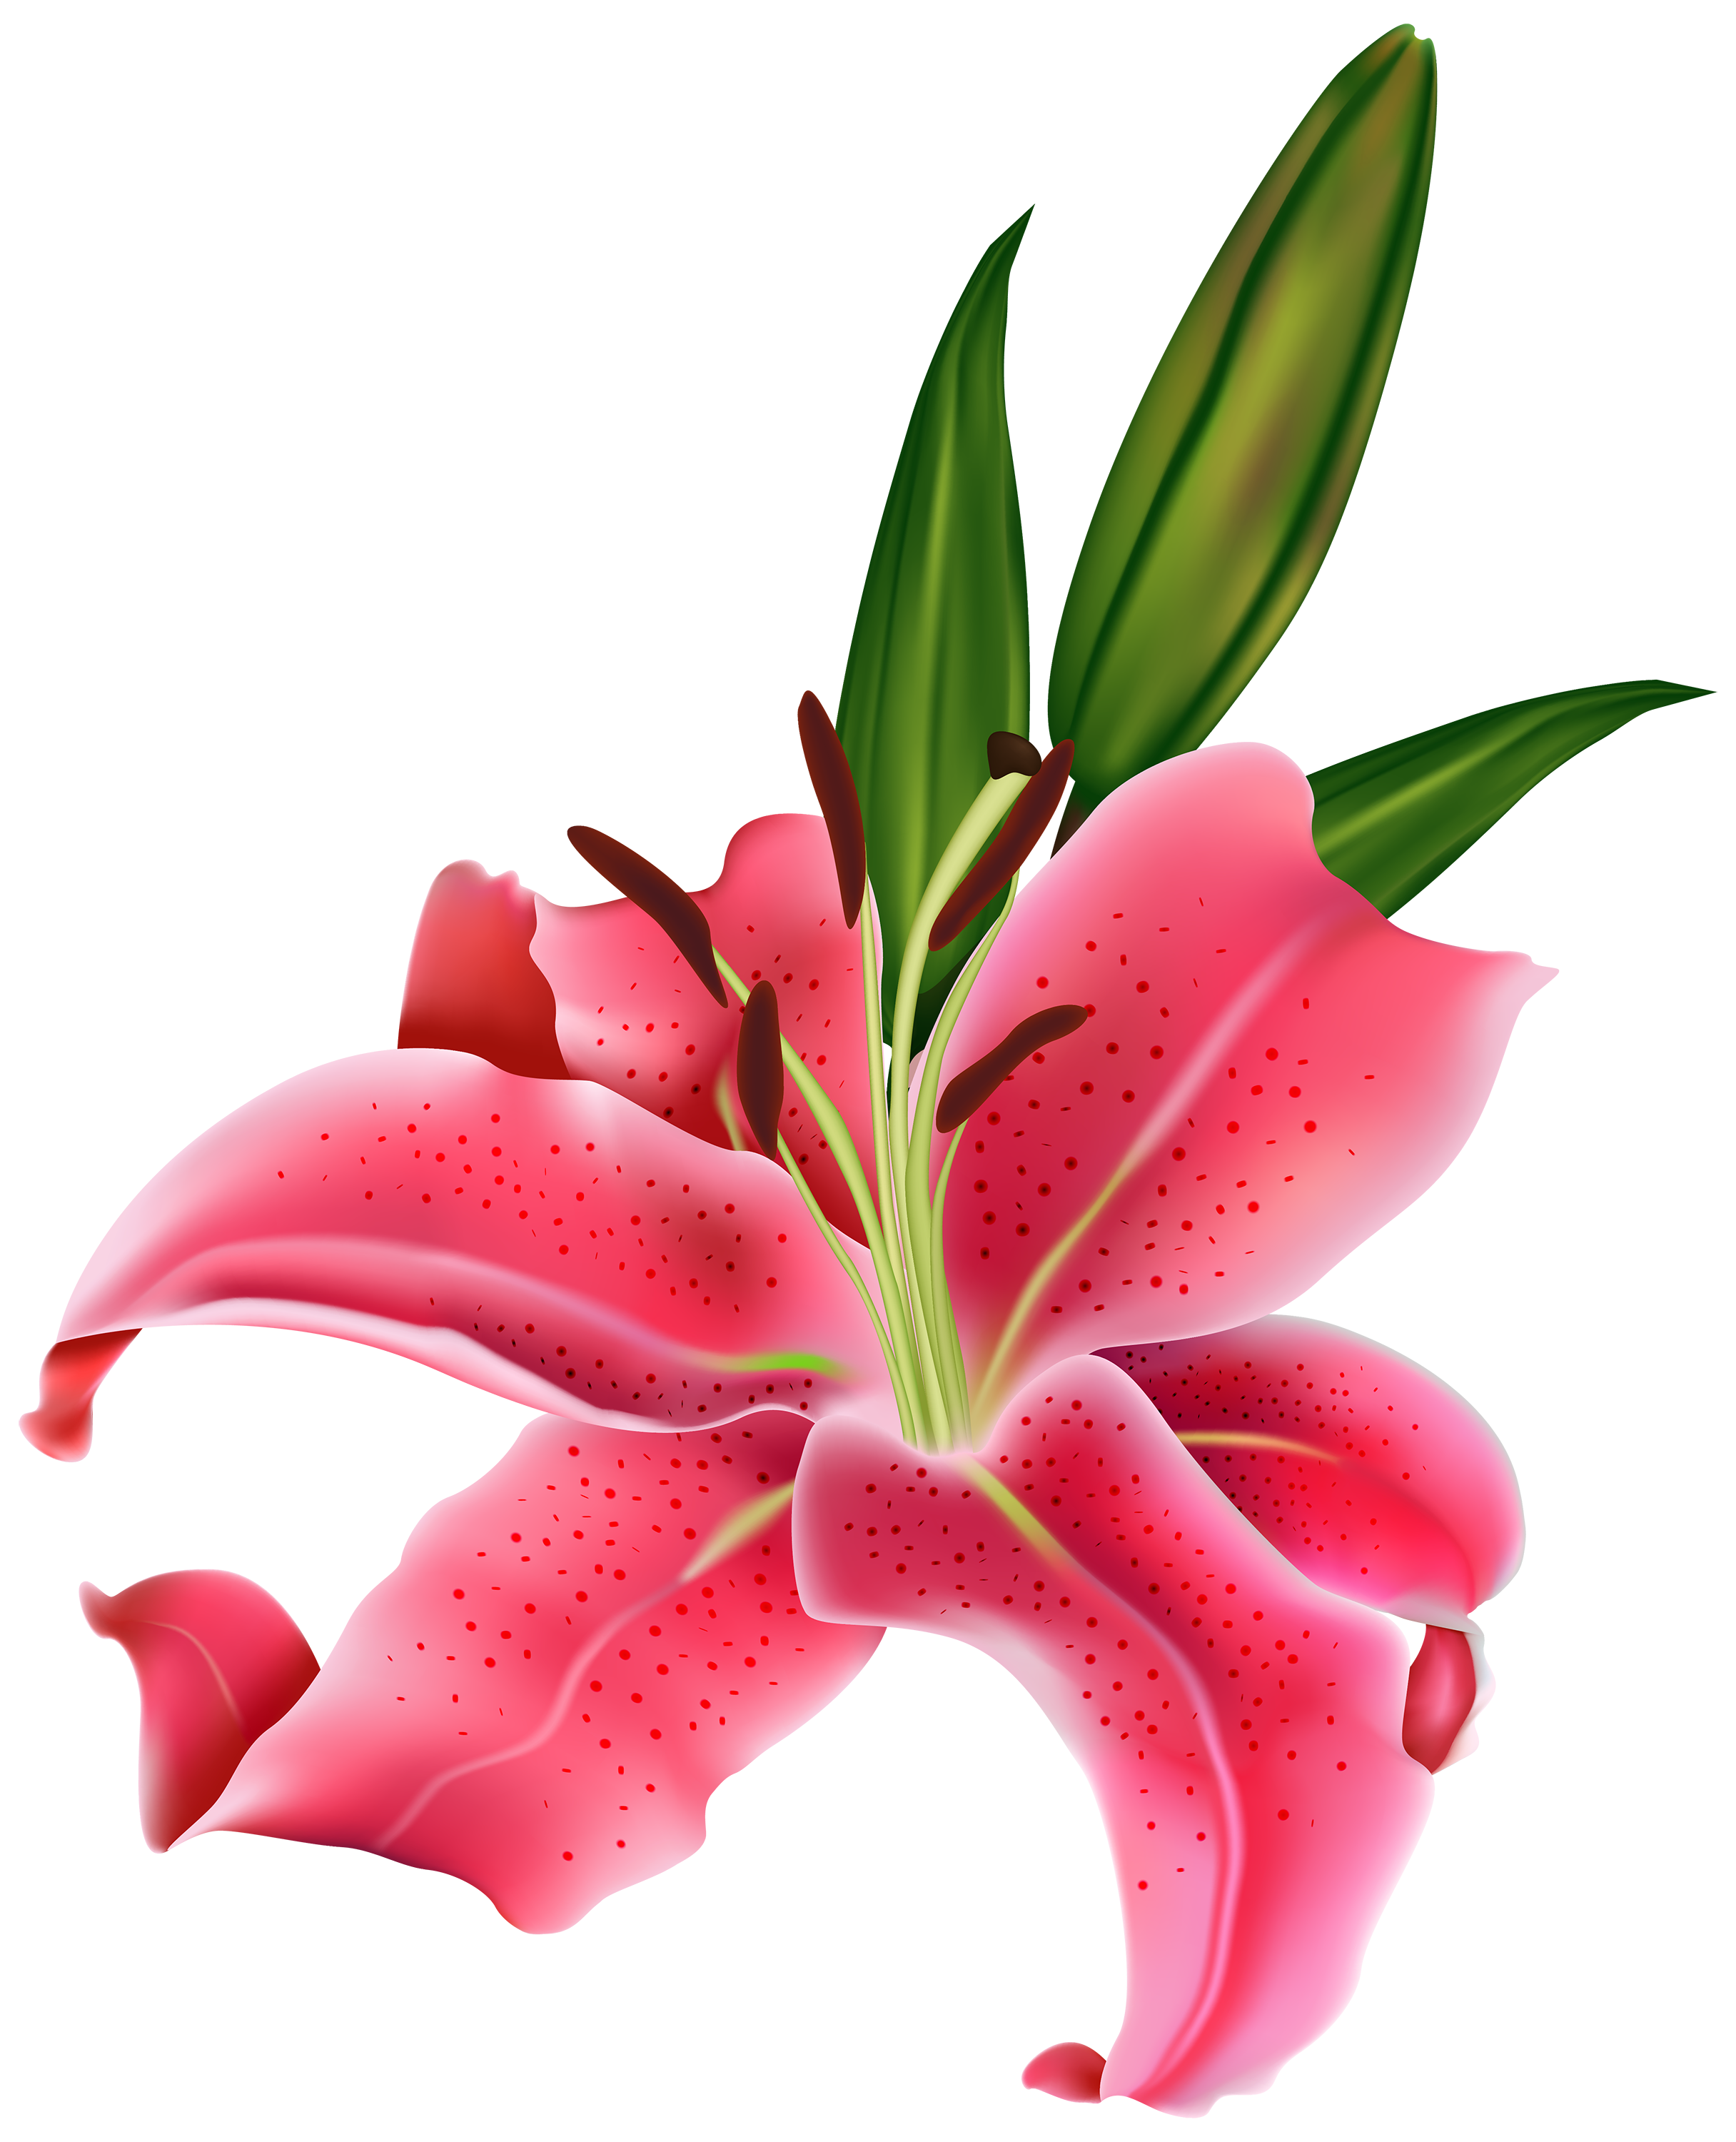 clipart freeuse download Pink lilies clipart flores. Amaryllis drawing stargazer lily